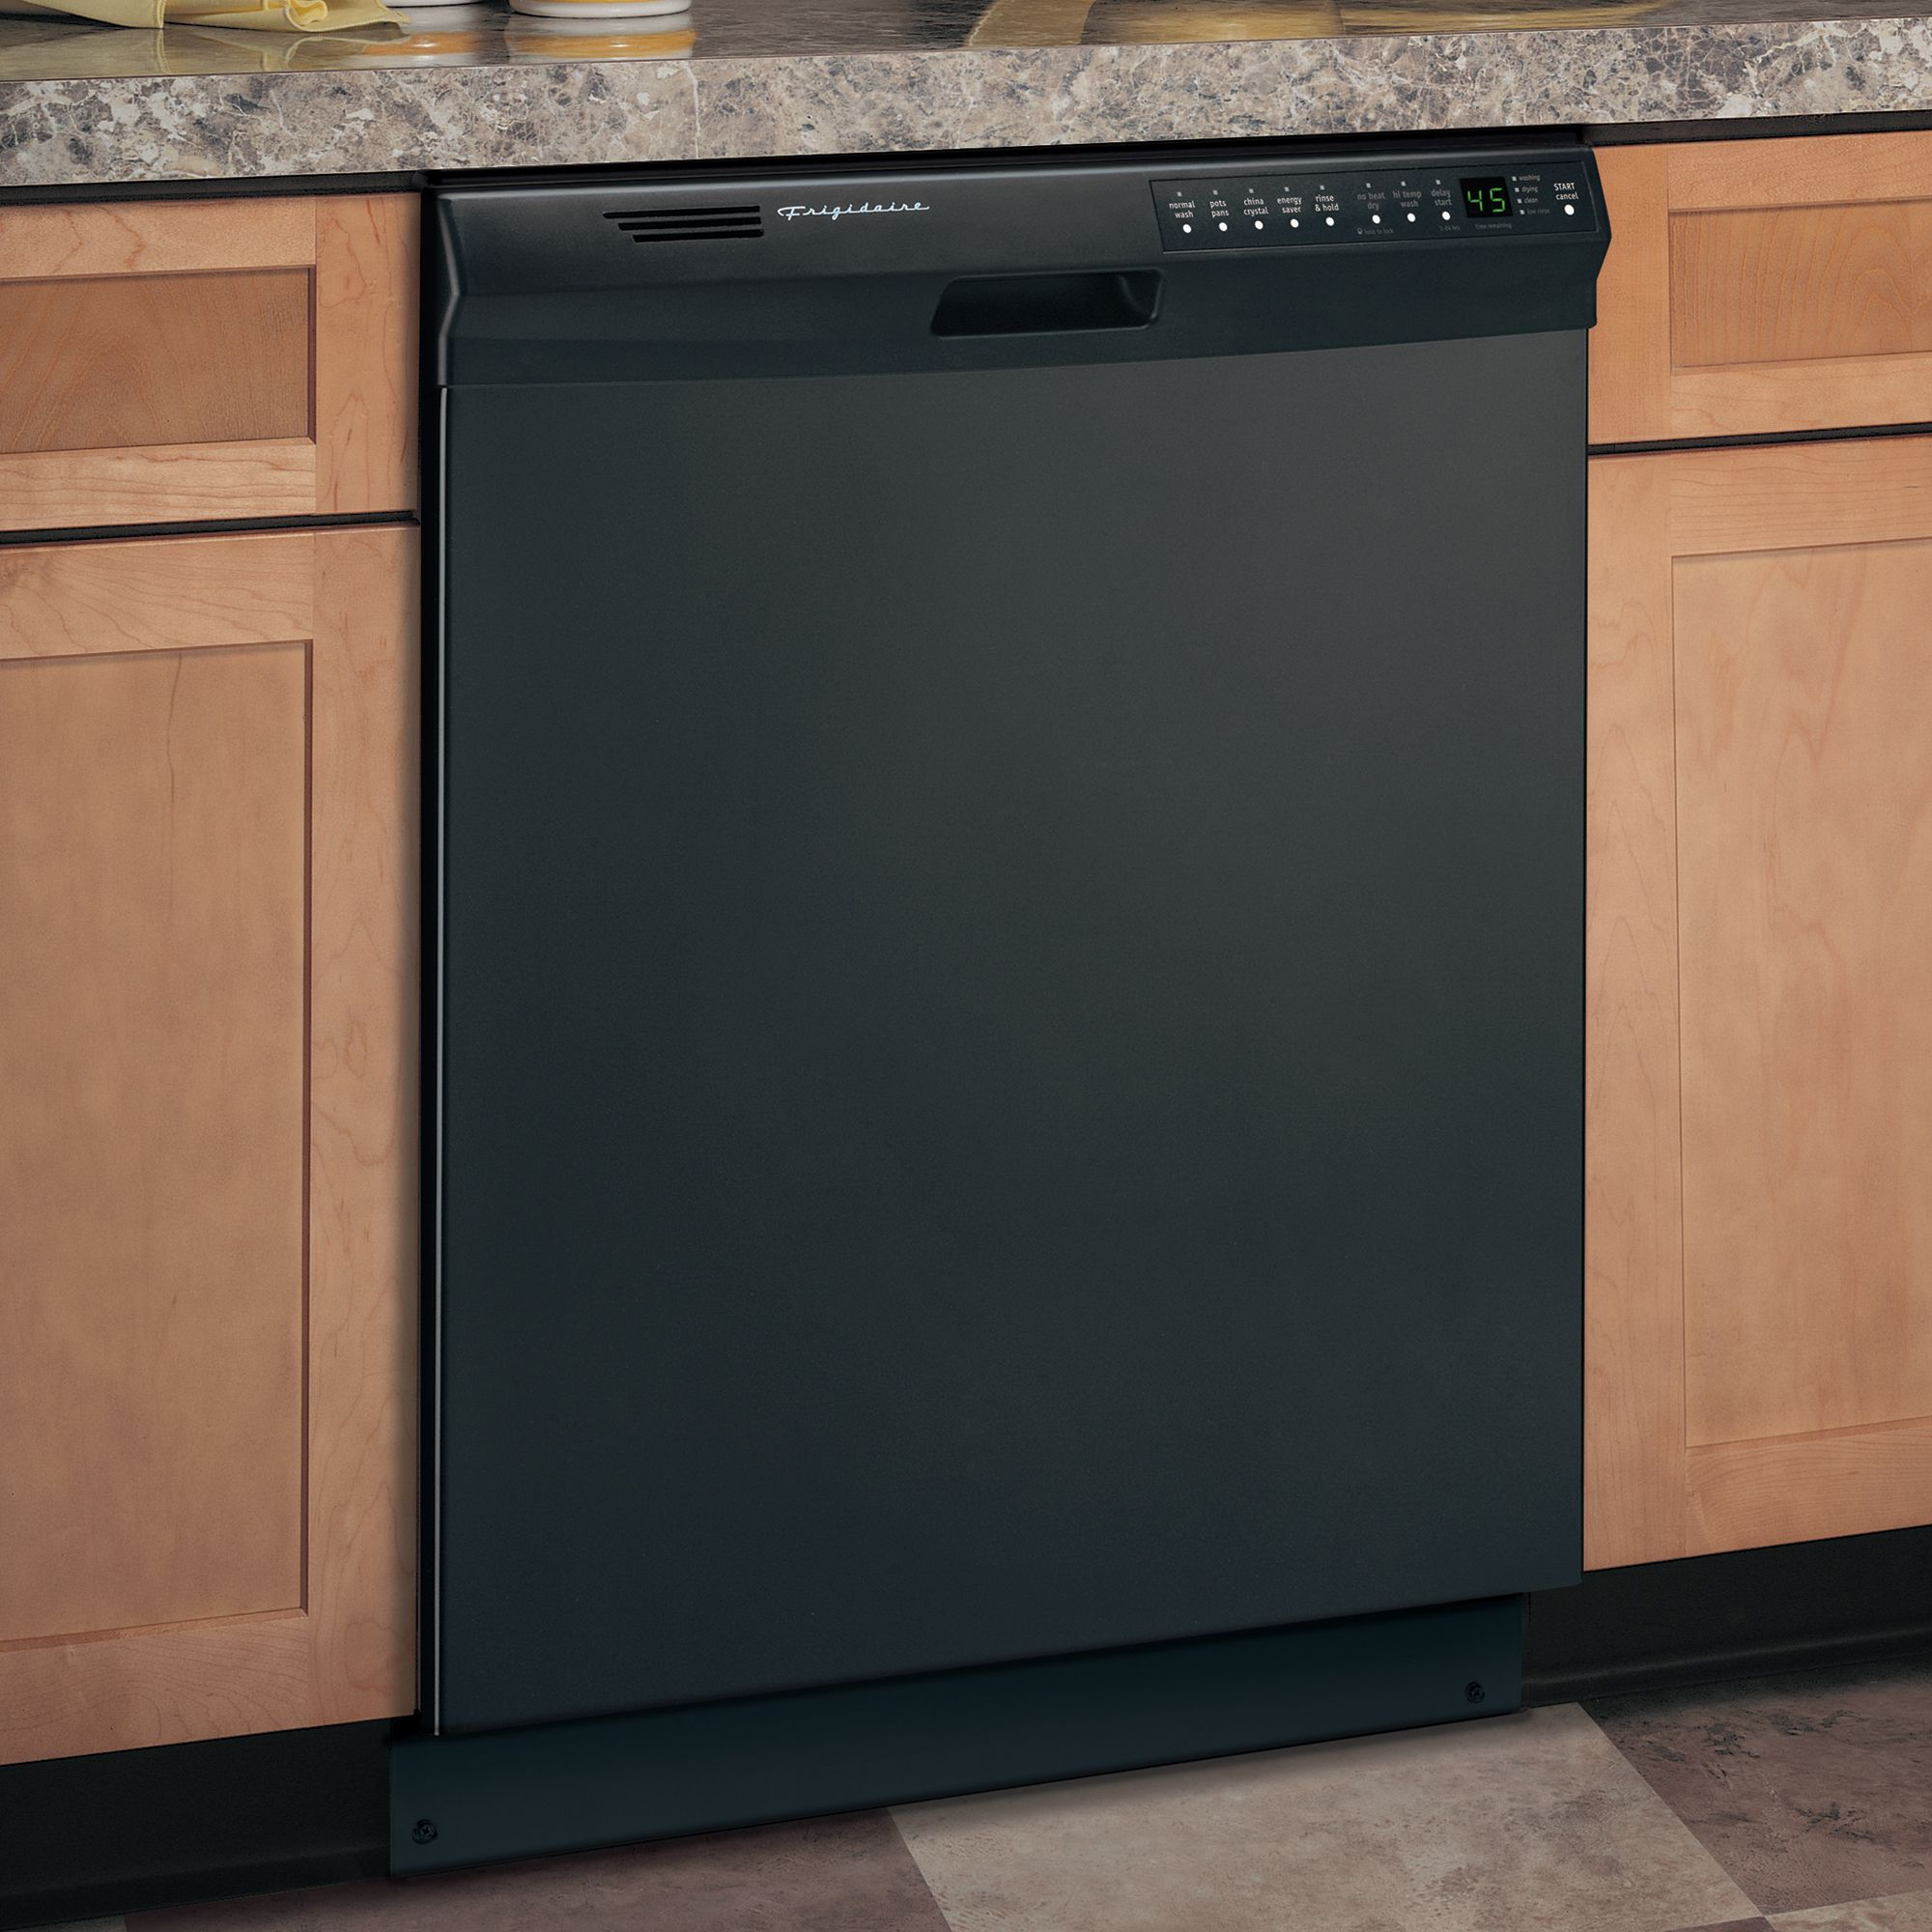 "Frigidaire FDB2410HIB 24"" Built-In Dishwasher - Black"